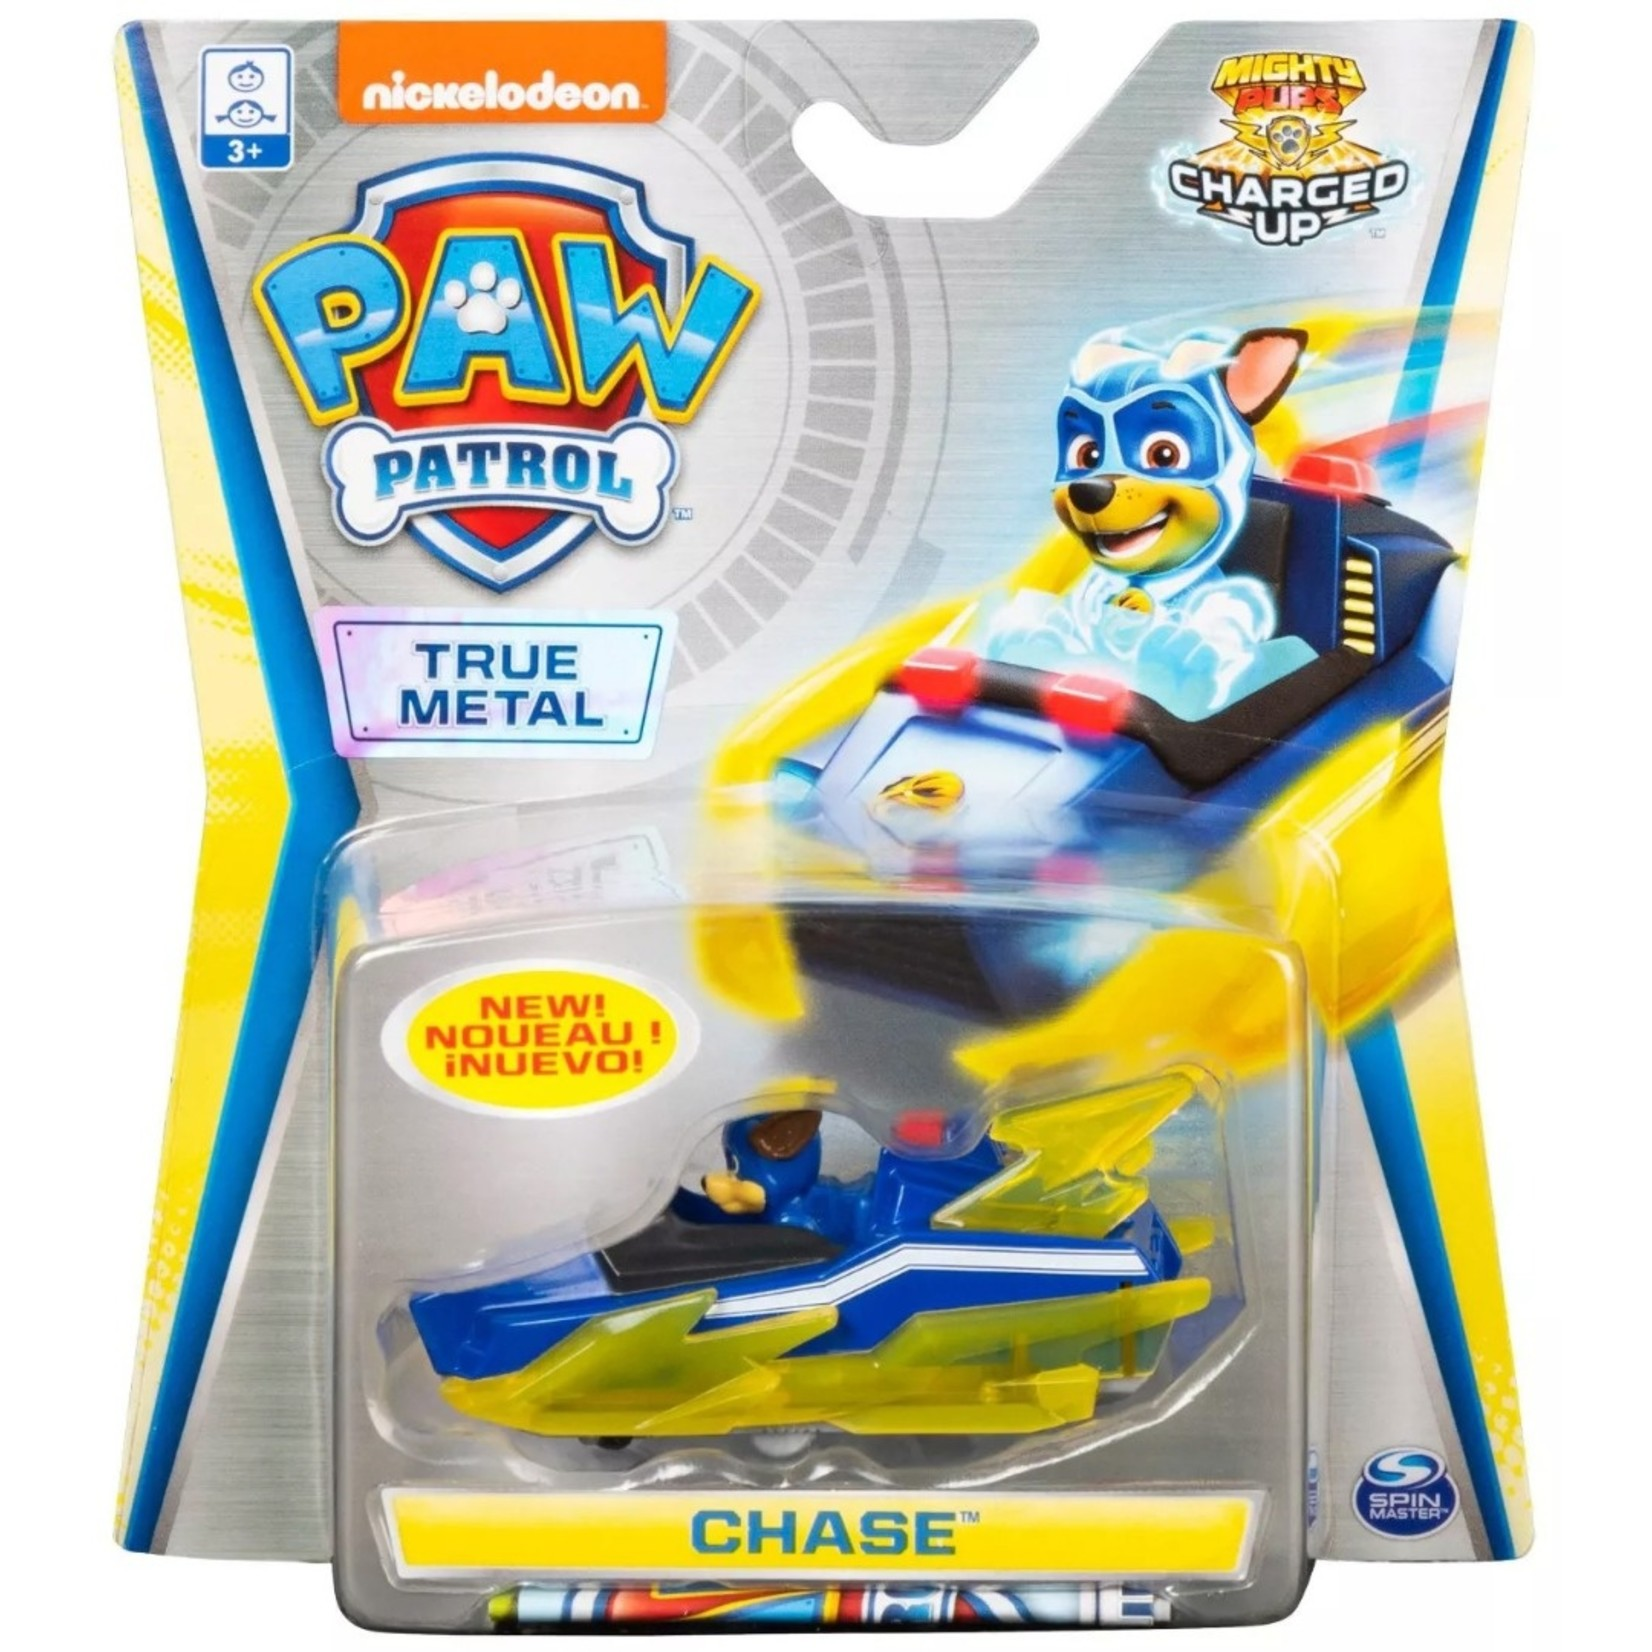 Spin Master Paw Patrol True Metal Charged Up Chase